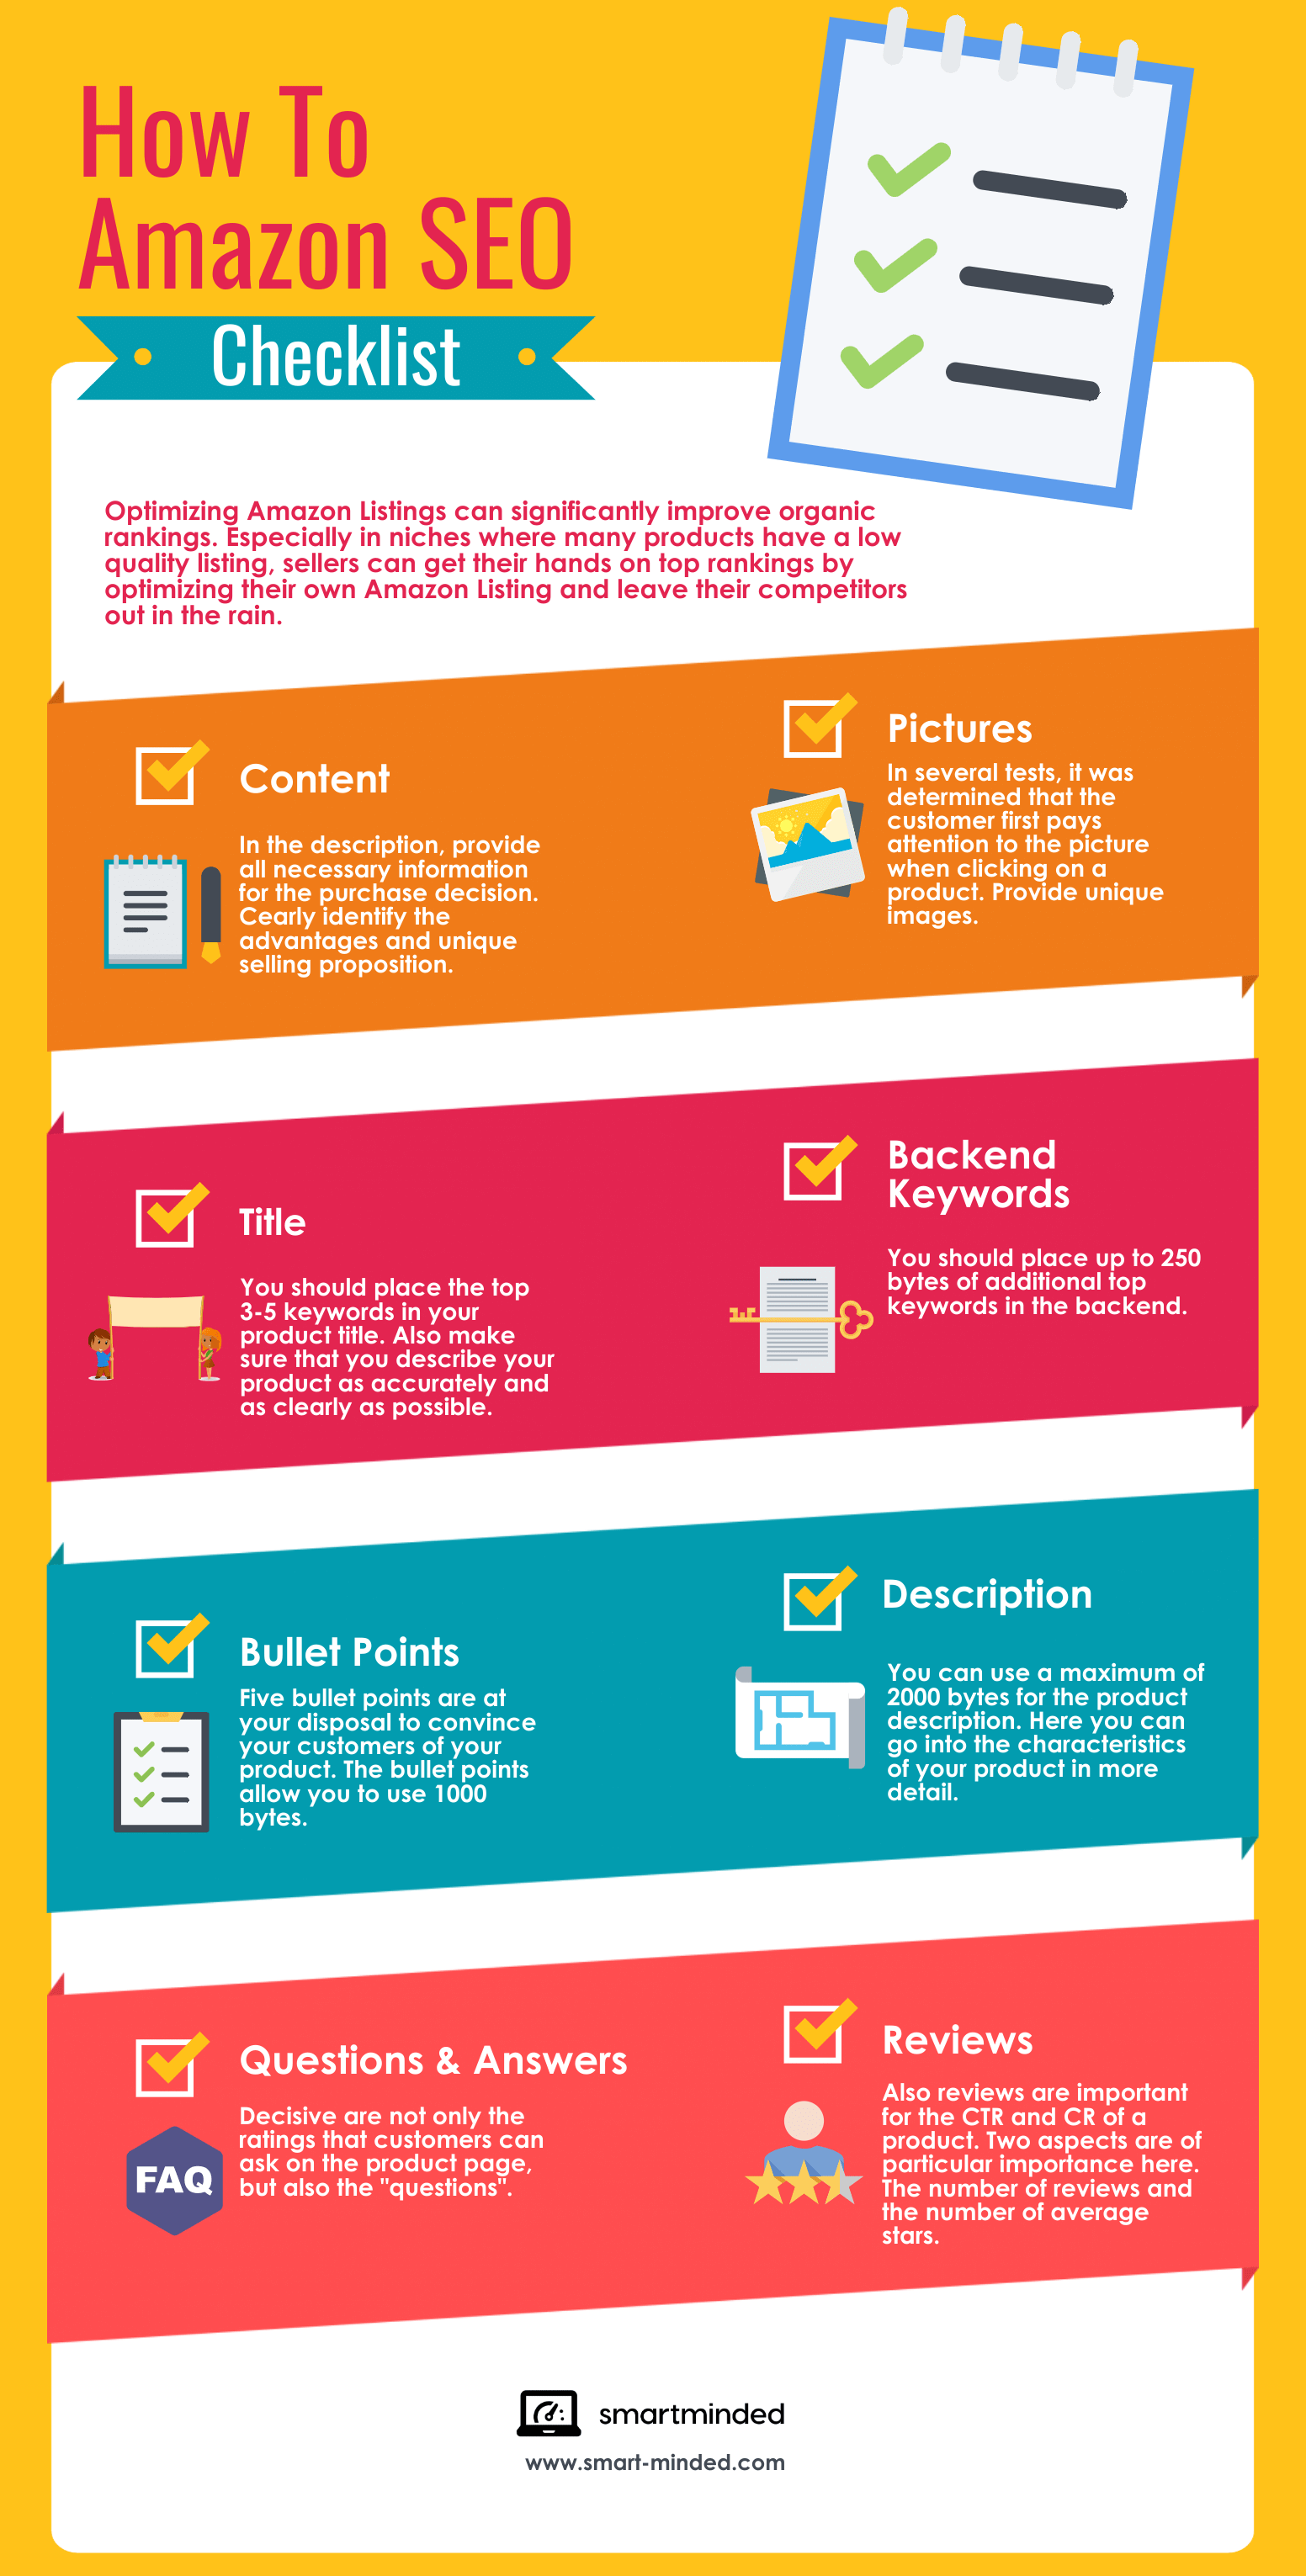 Amazon_seo-checklist-infographic-plaza